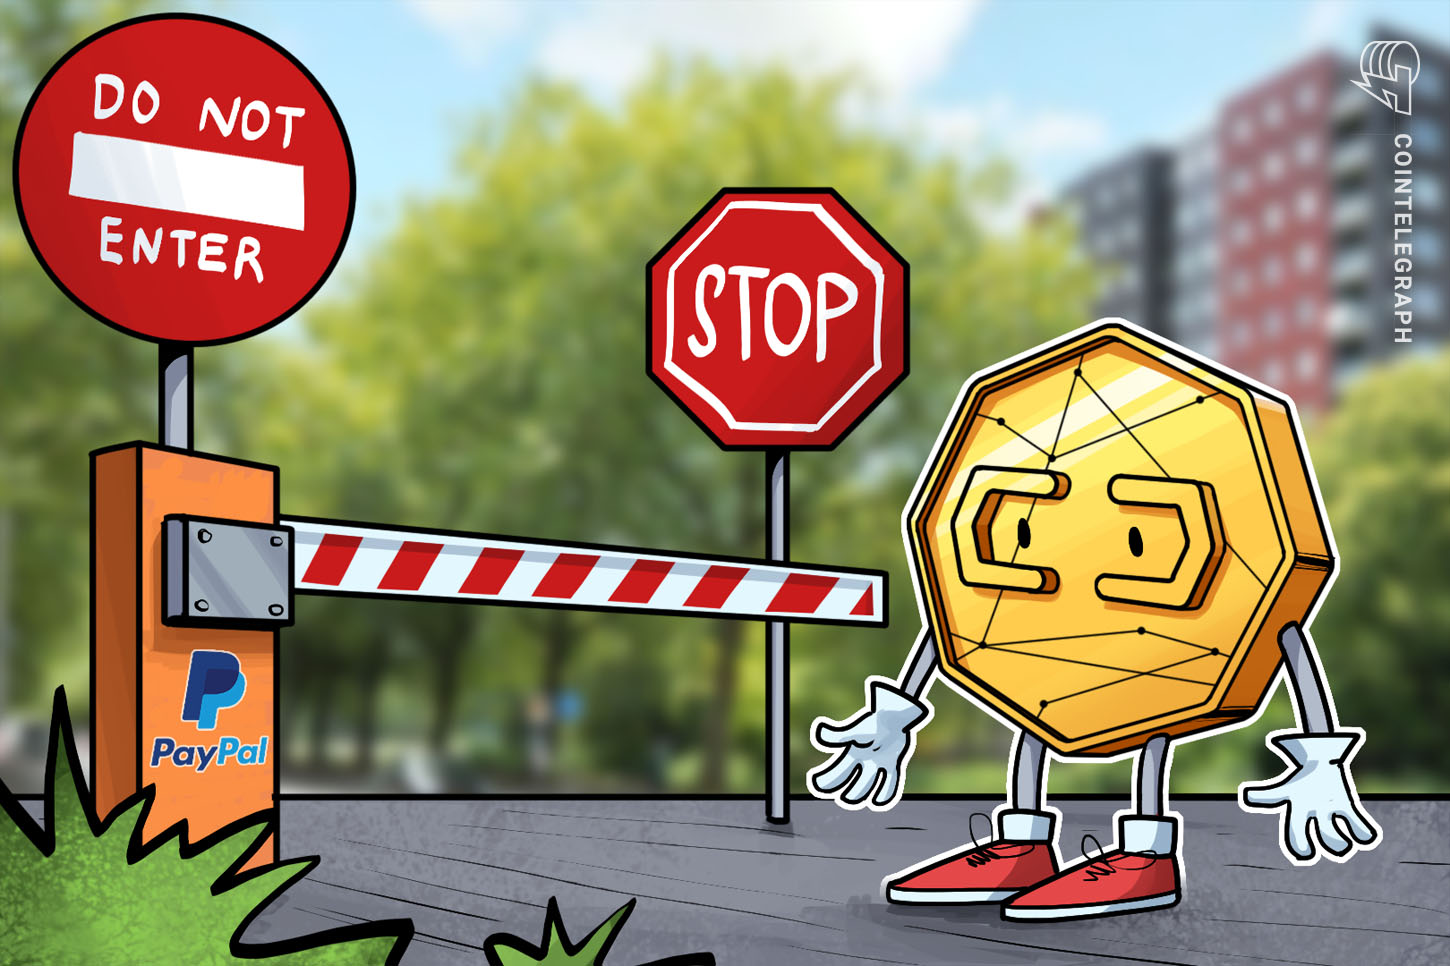 'Dangerous' Tokenized Staunch Estate Platform Hits New Heights After Paypal Ban thumbnail